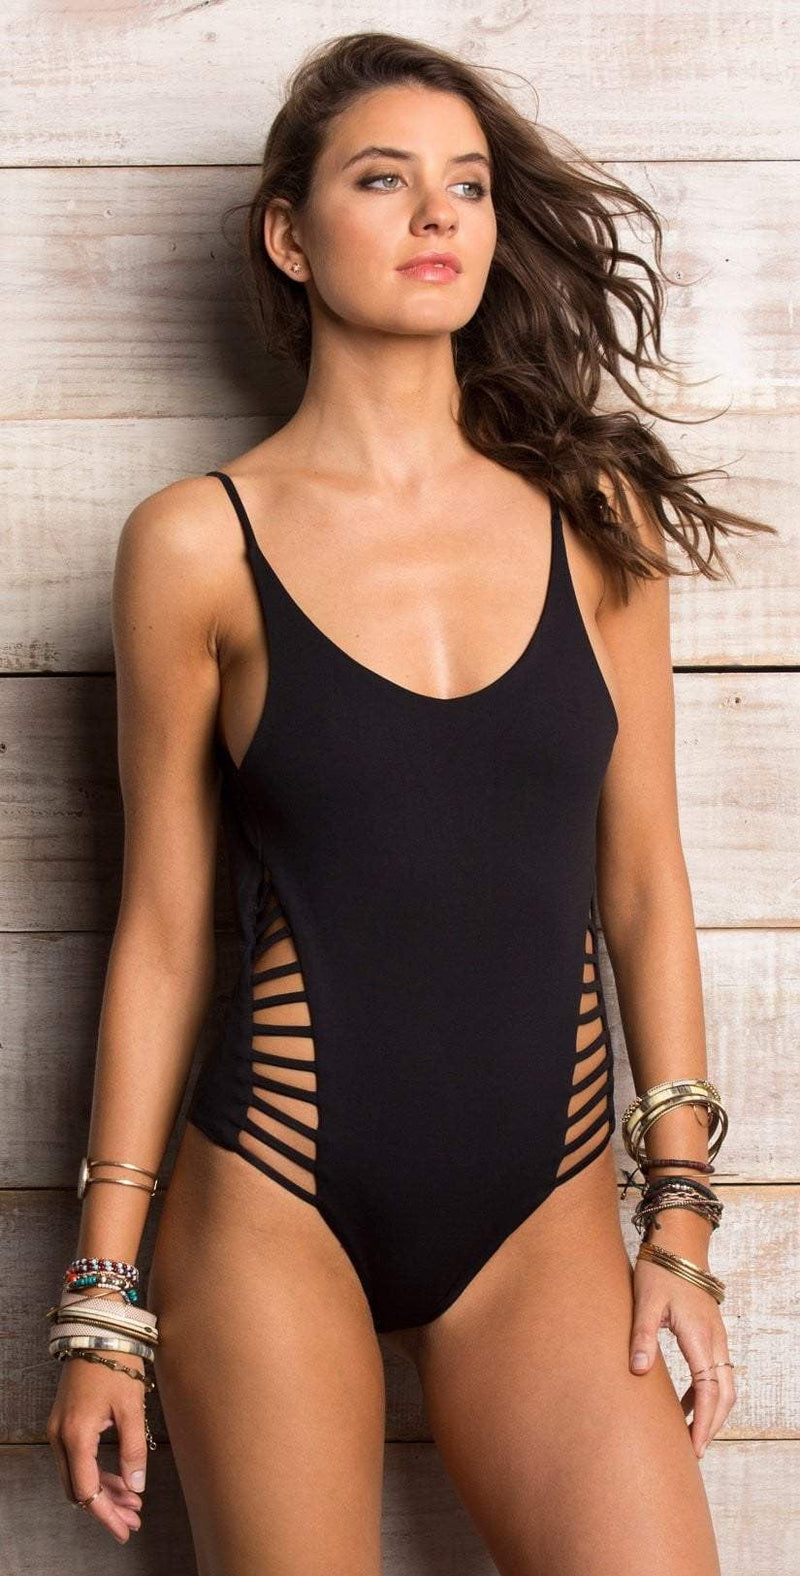 Maylana Lina Stripes Reversible One Piece OL17-E06-STR: